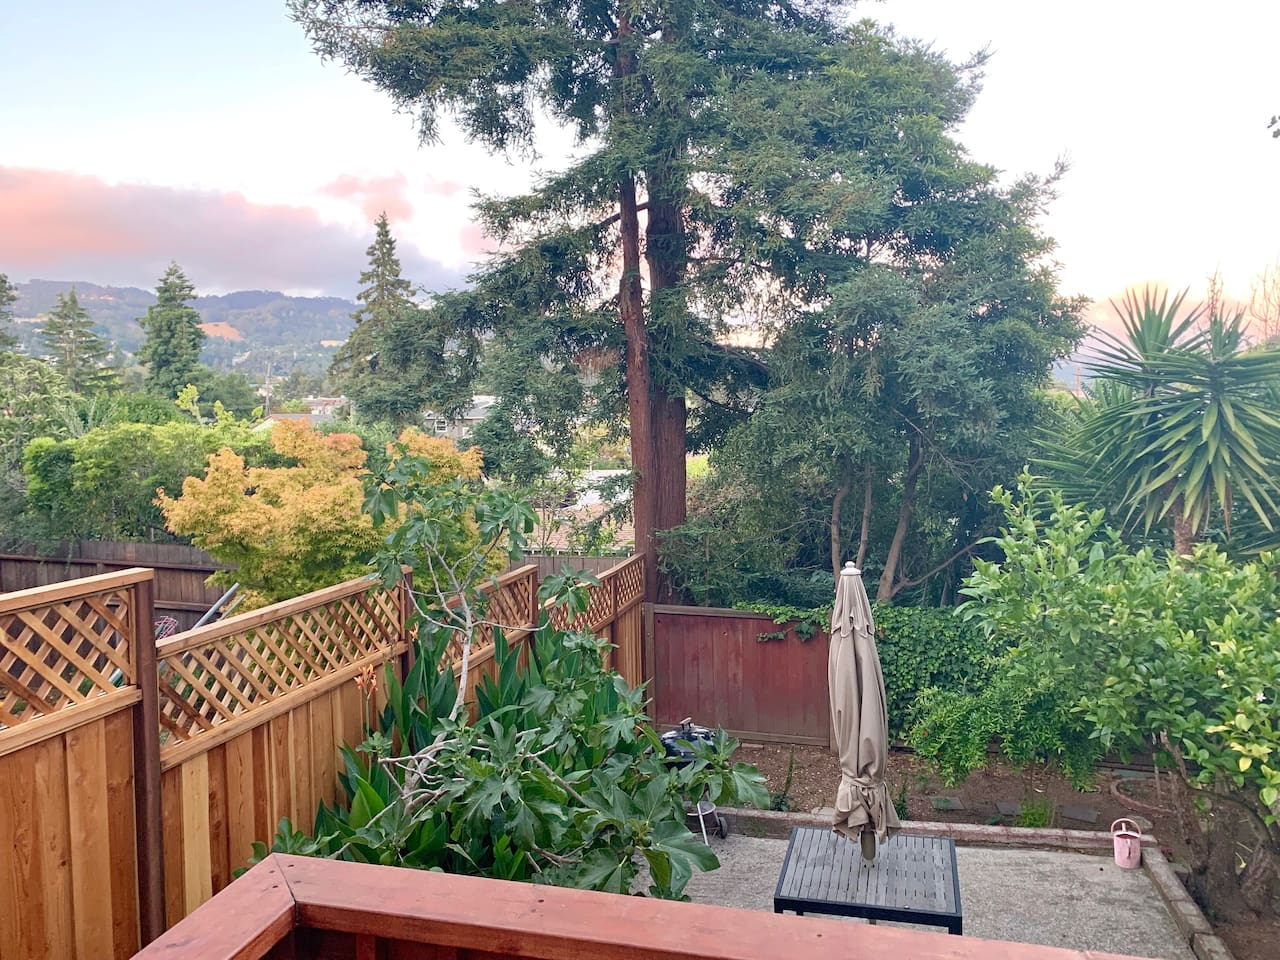 Sip coffee and watch the sun rise over the Oakland hills from your front door.